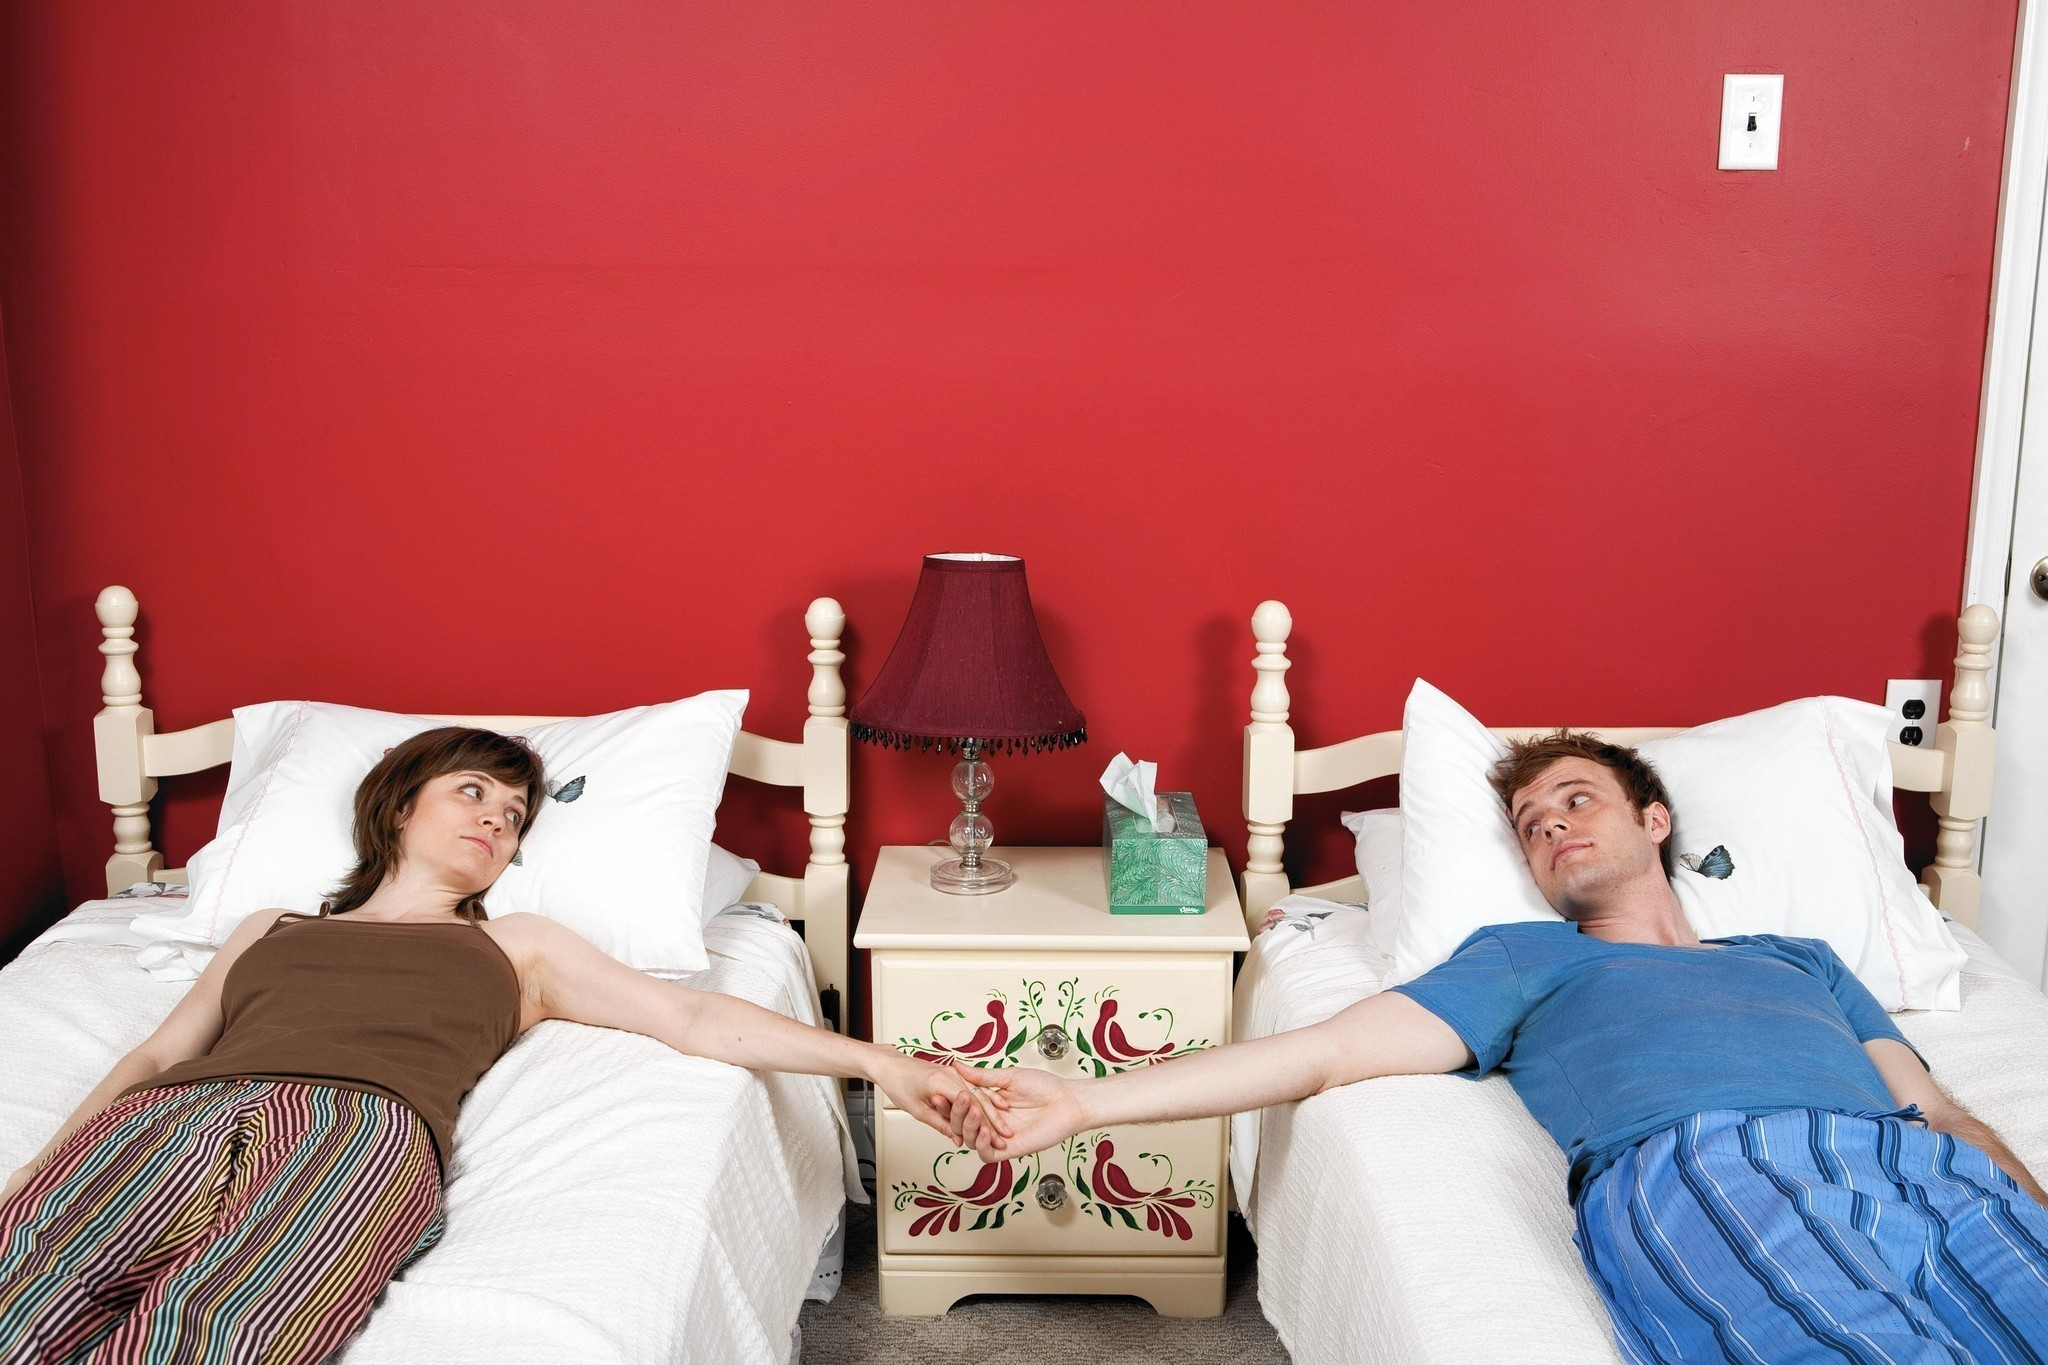 Married Couples Sleeping Separate Bedrooms Centerfordemocracy Org. husband and wife separate bedrooms   Centerfordemocracy org